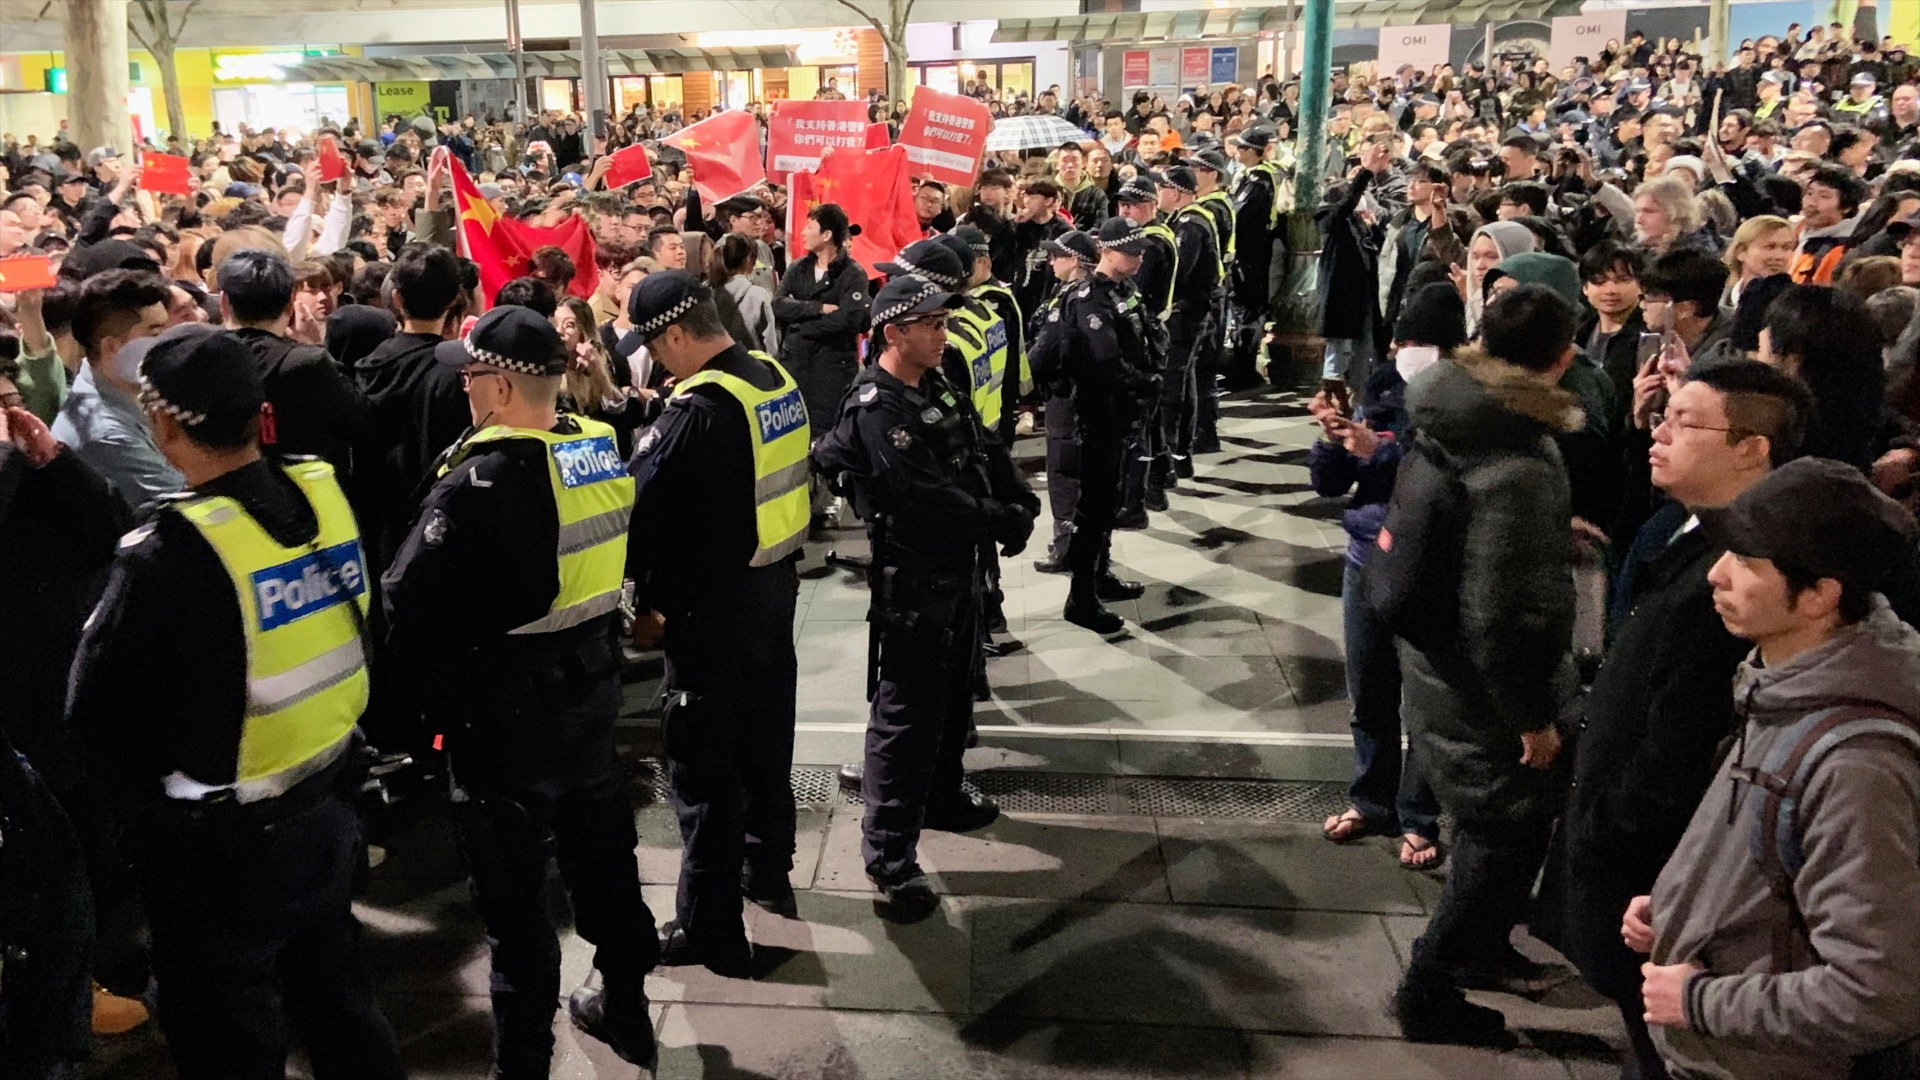 Hong Kong Protest in Melbourne Turns Violent as Pro-Beijing Demonstrators Seek to Silence Protesters